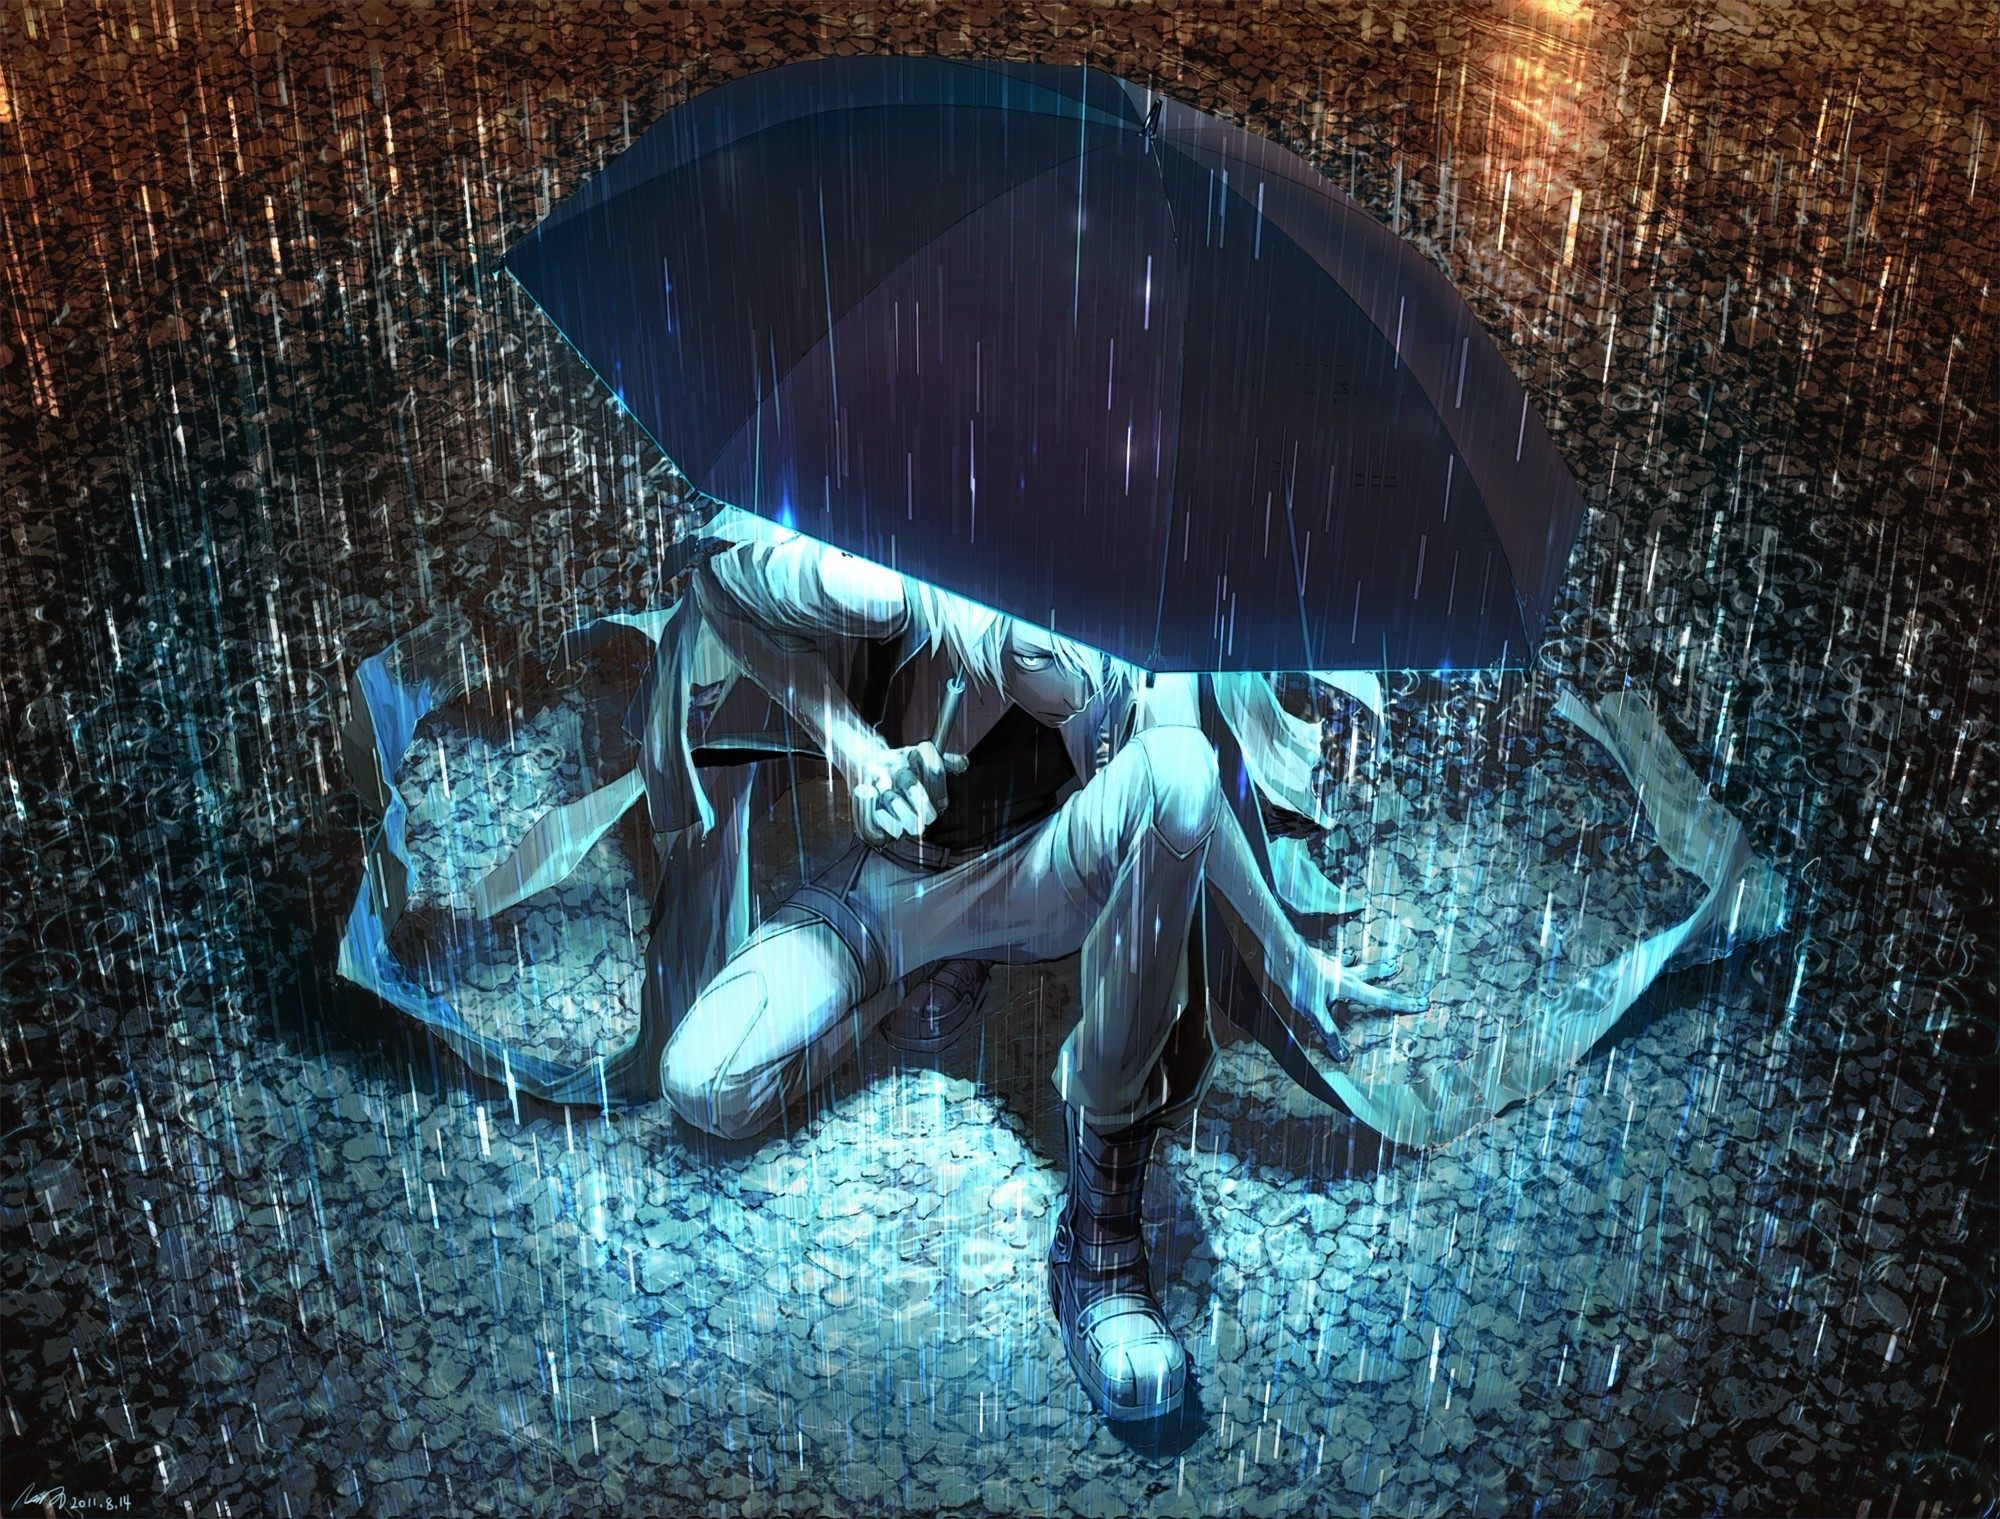 2000x1519 Umbrellas Anime Rain · anime artwork makoto shinkai the garden of words